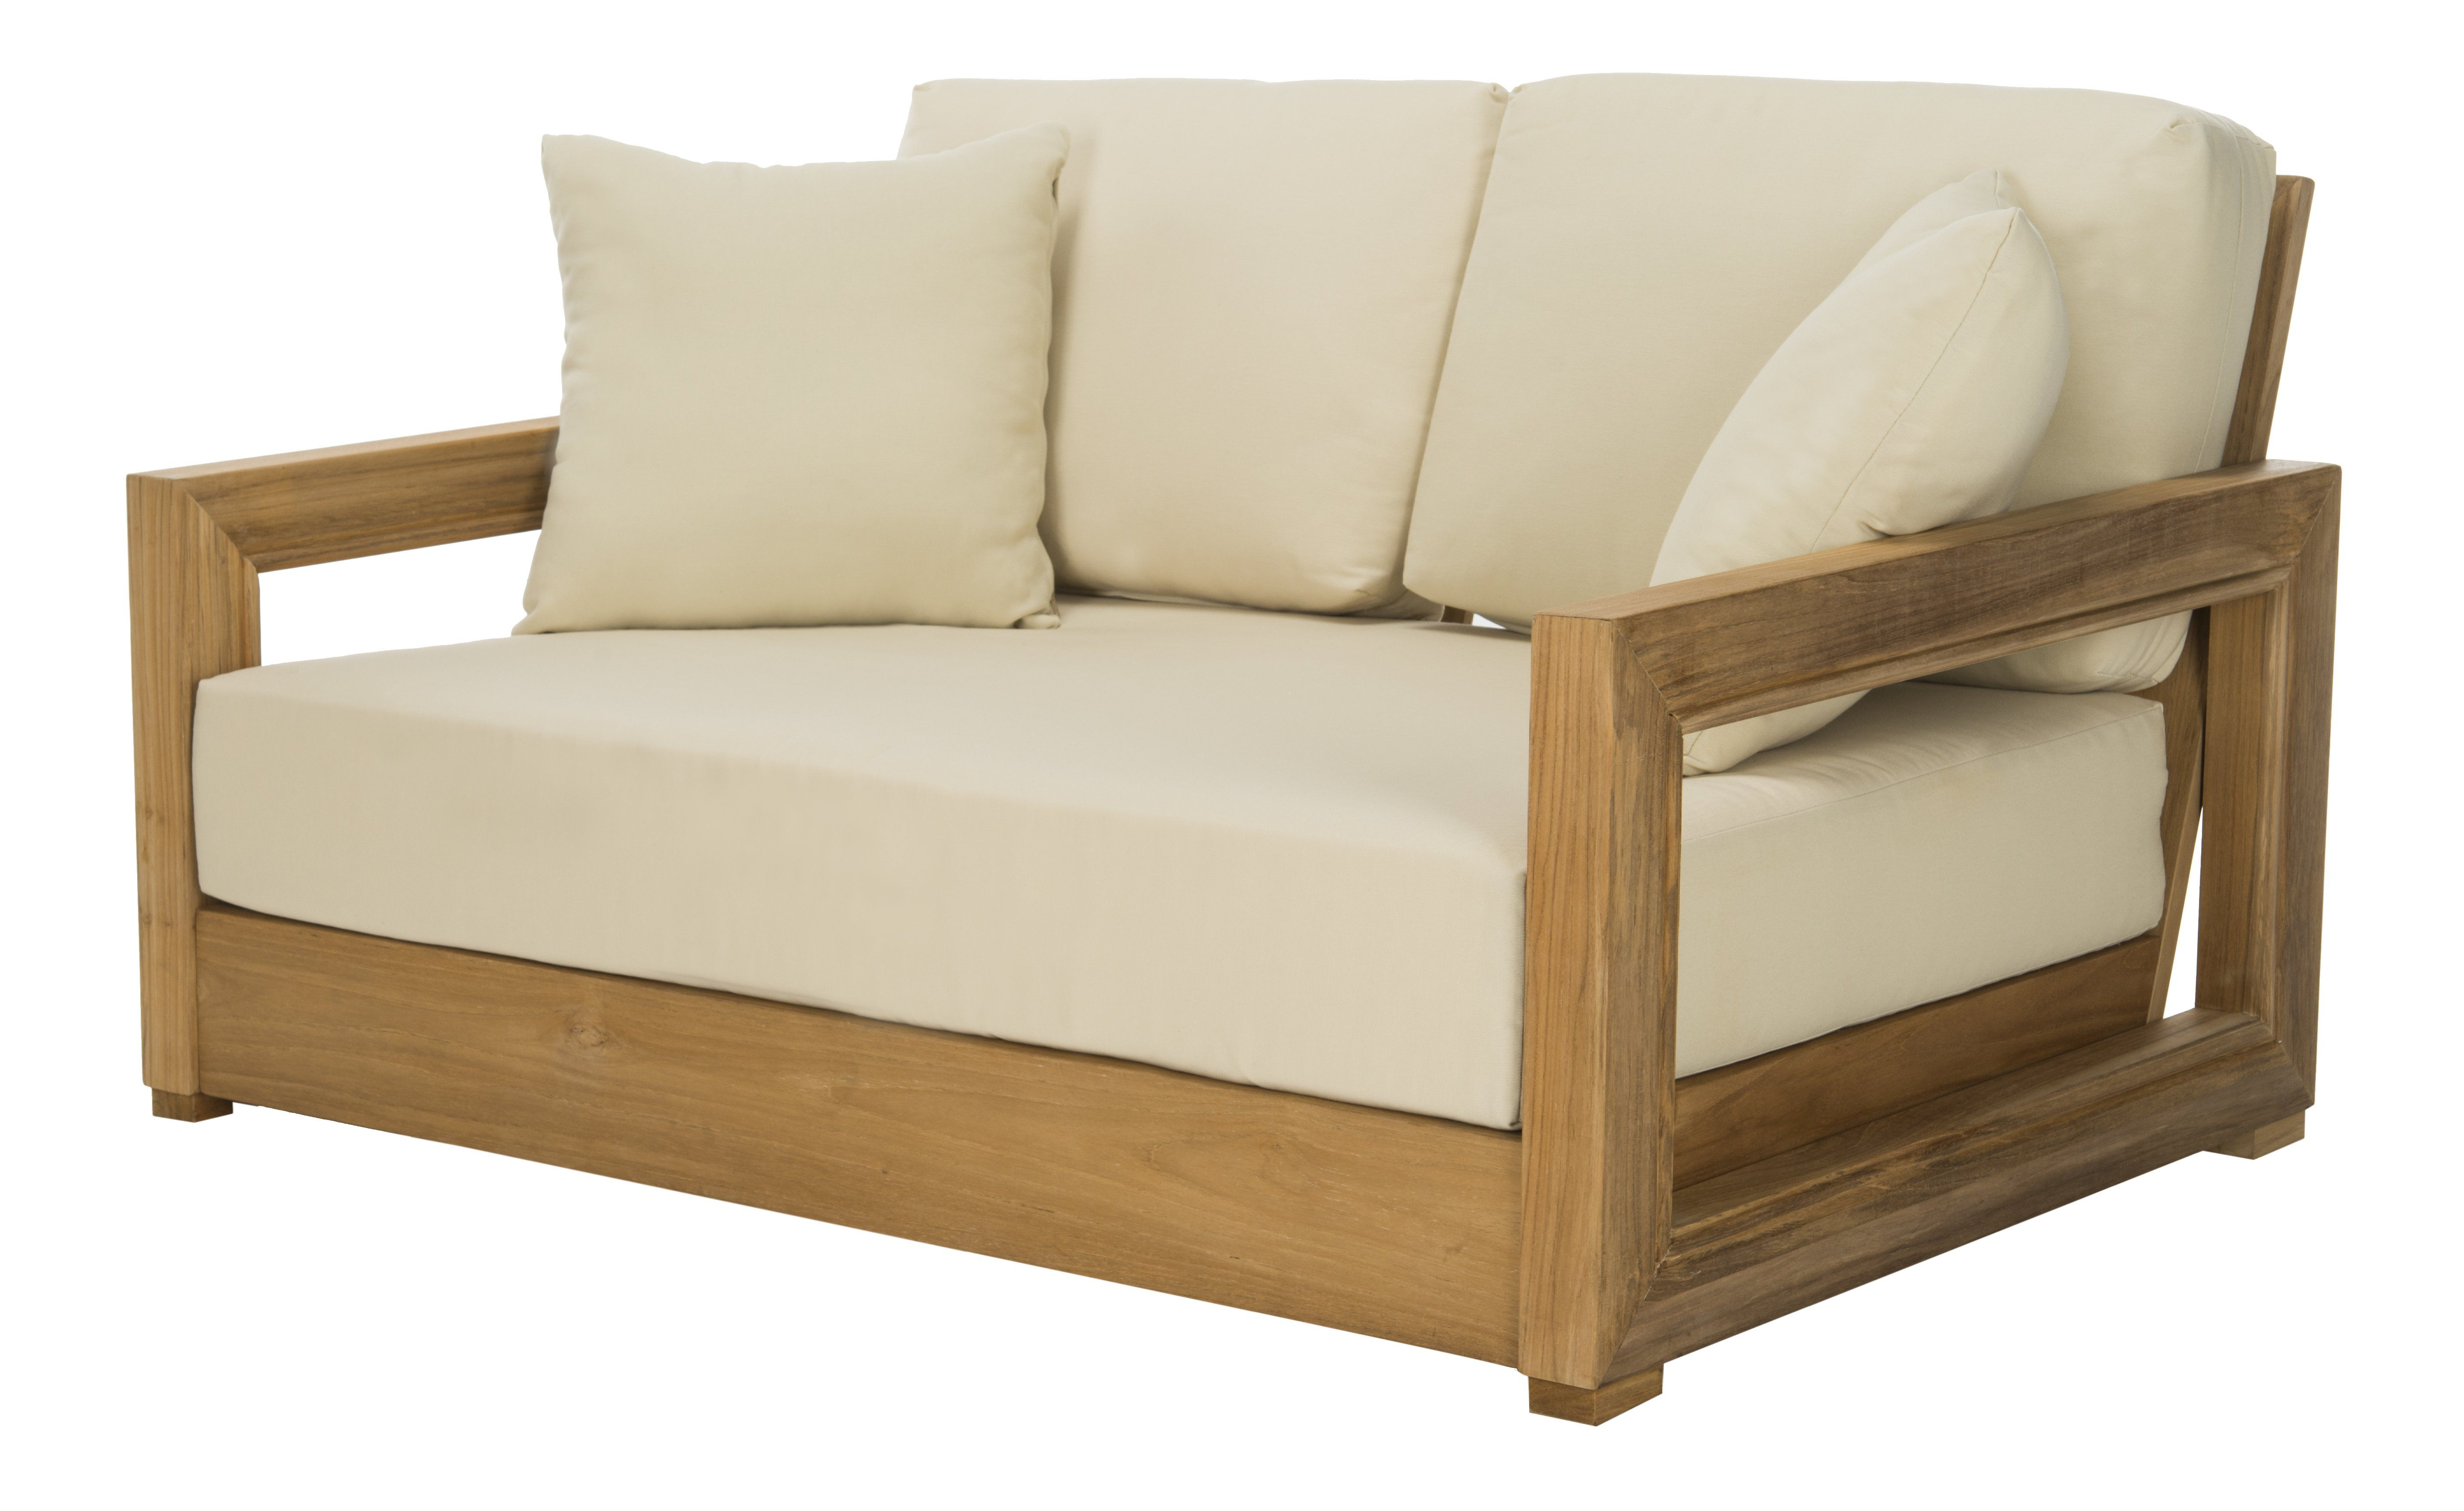 Lakeland Teak Patio Sofas With Cushions With Regard To Well Known Lakeland Teak Loveseat With Cushions (View 13 of 20)